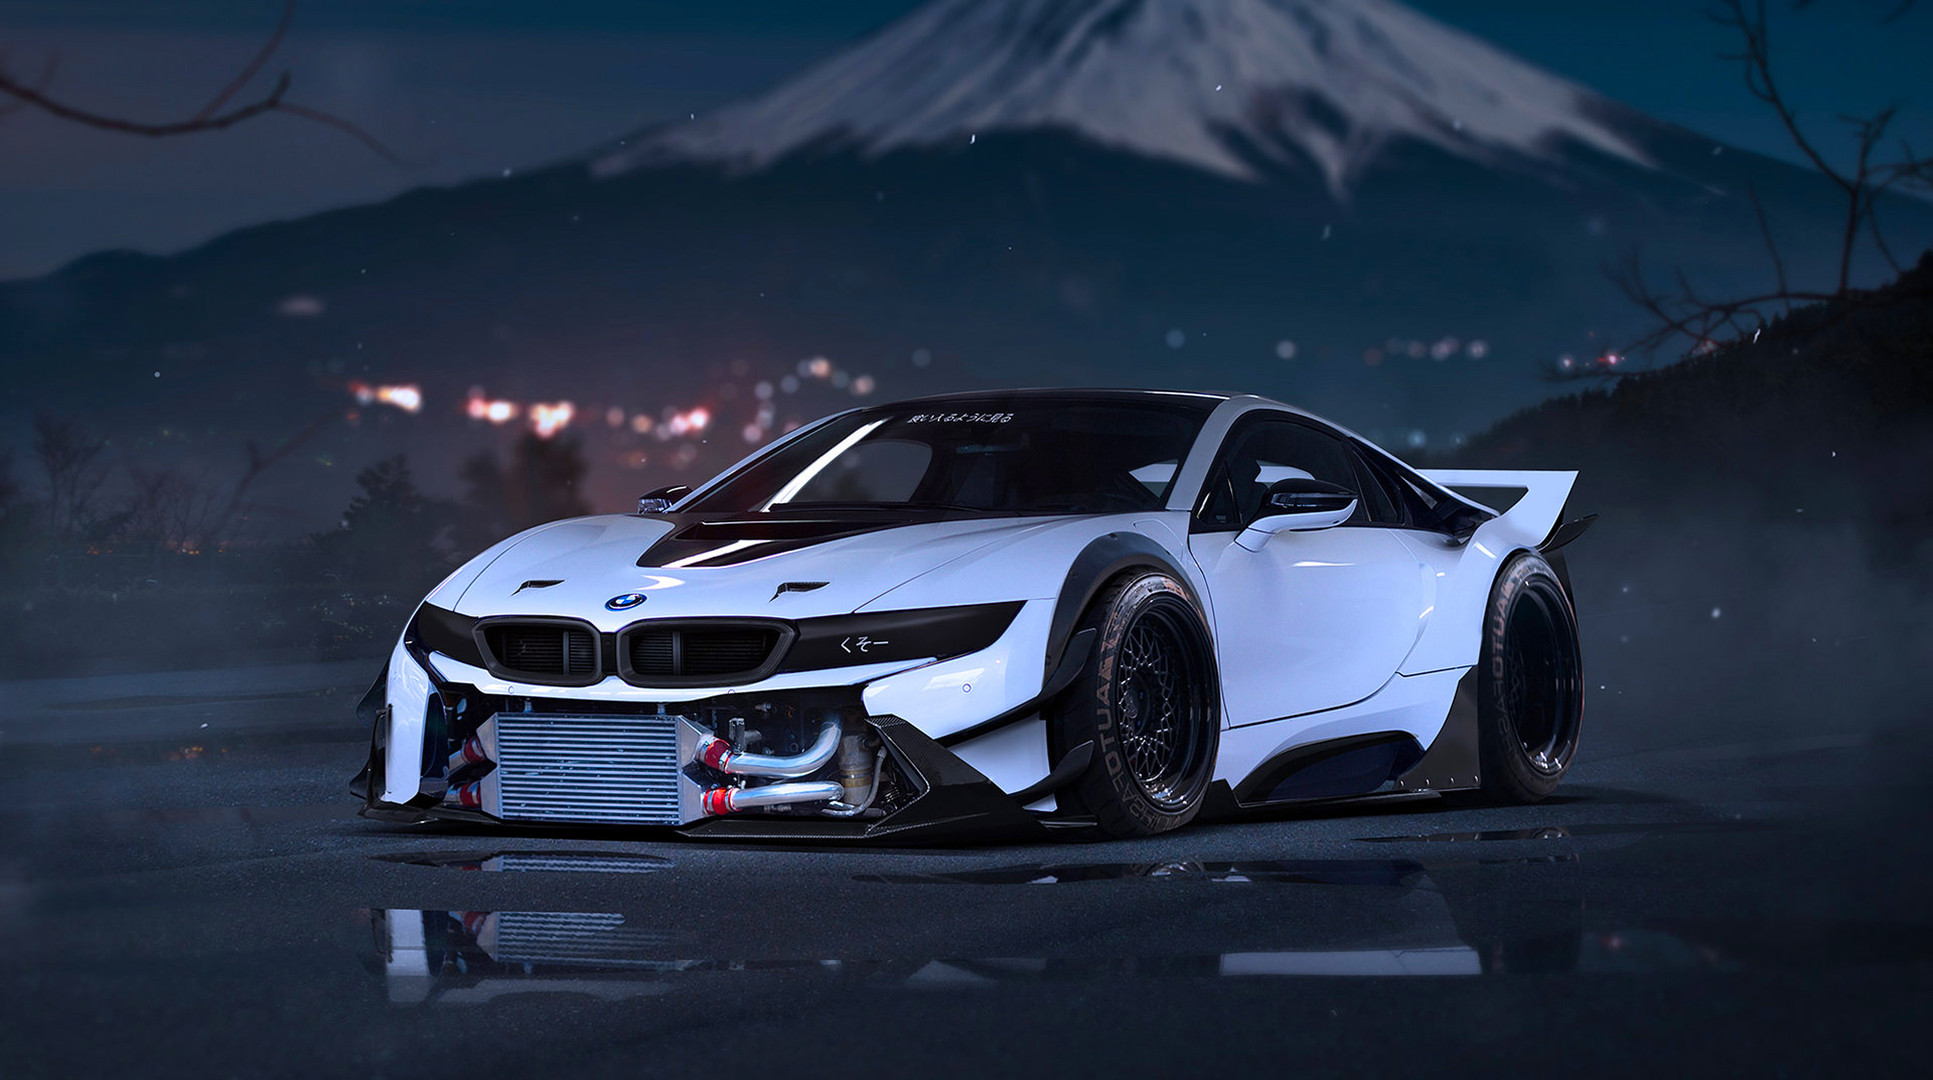 Supercar Wallpaper 79 Pictures